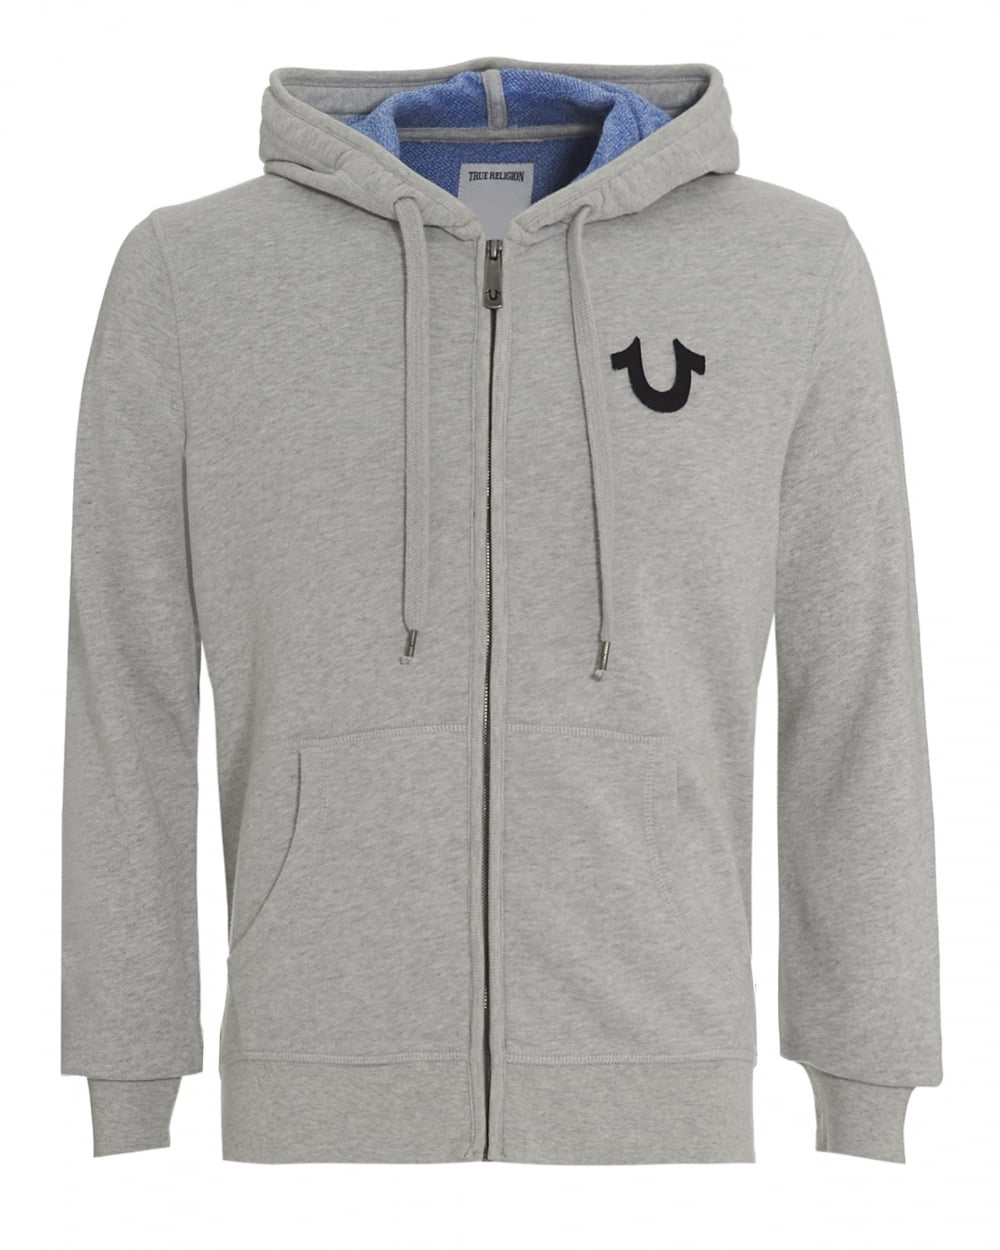 true religion jeans mens hoodie grey buddha graphic zip up hoodie. Black Bedroom Furniture Sets. Home Design Ideas